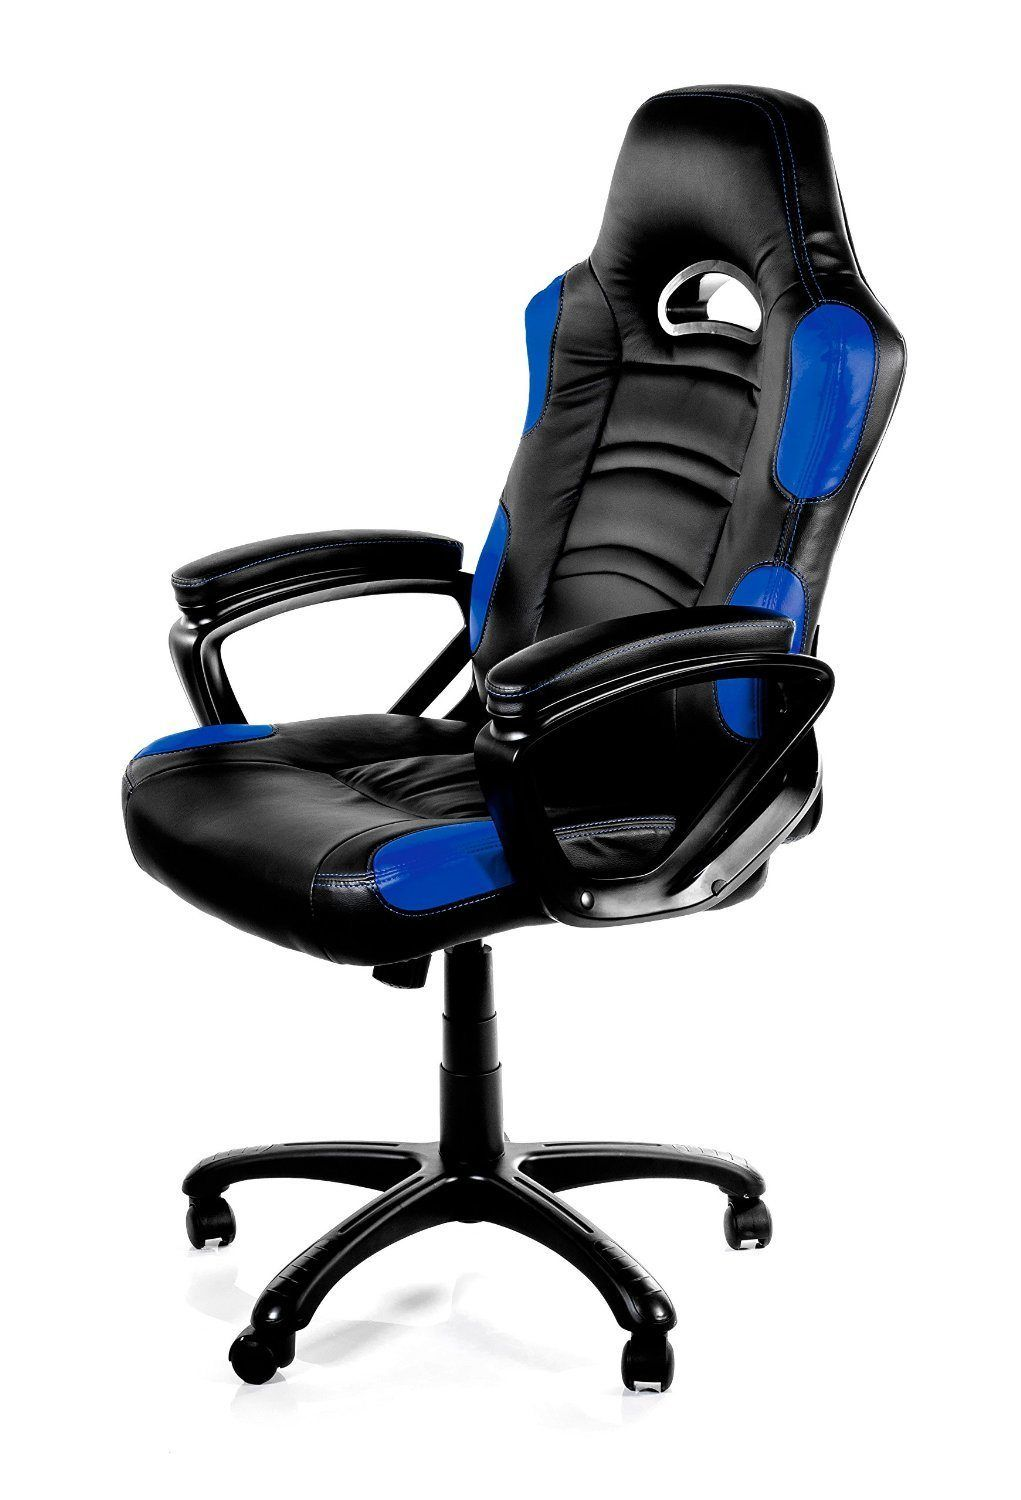 gtracer gaming chair review